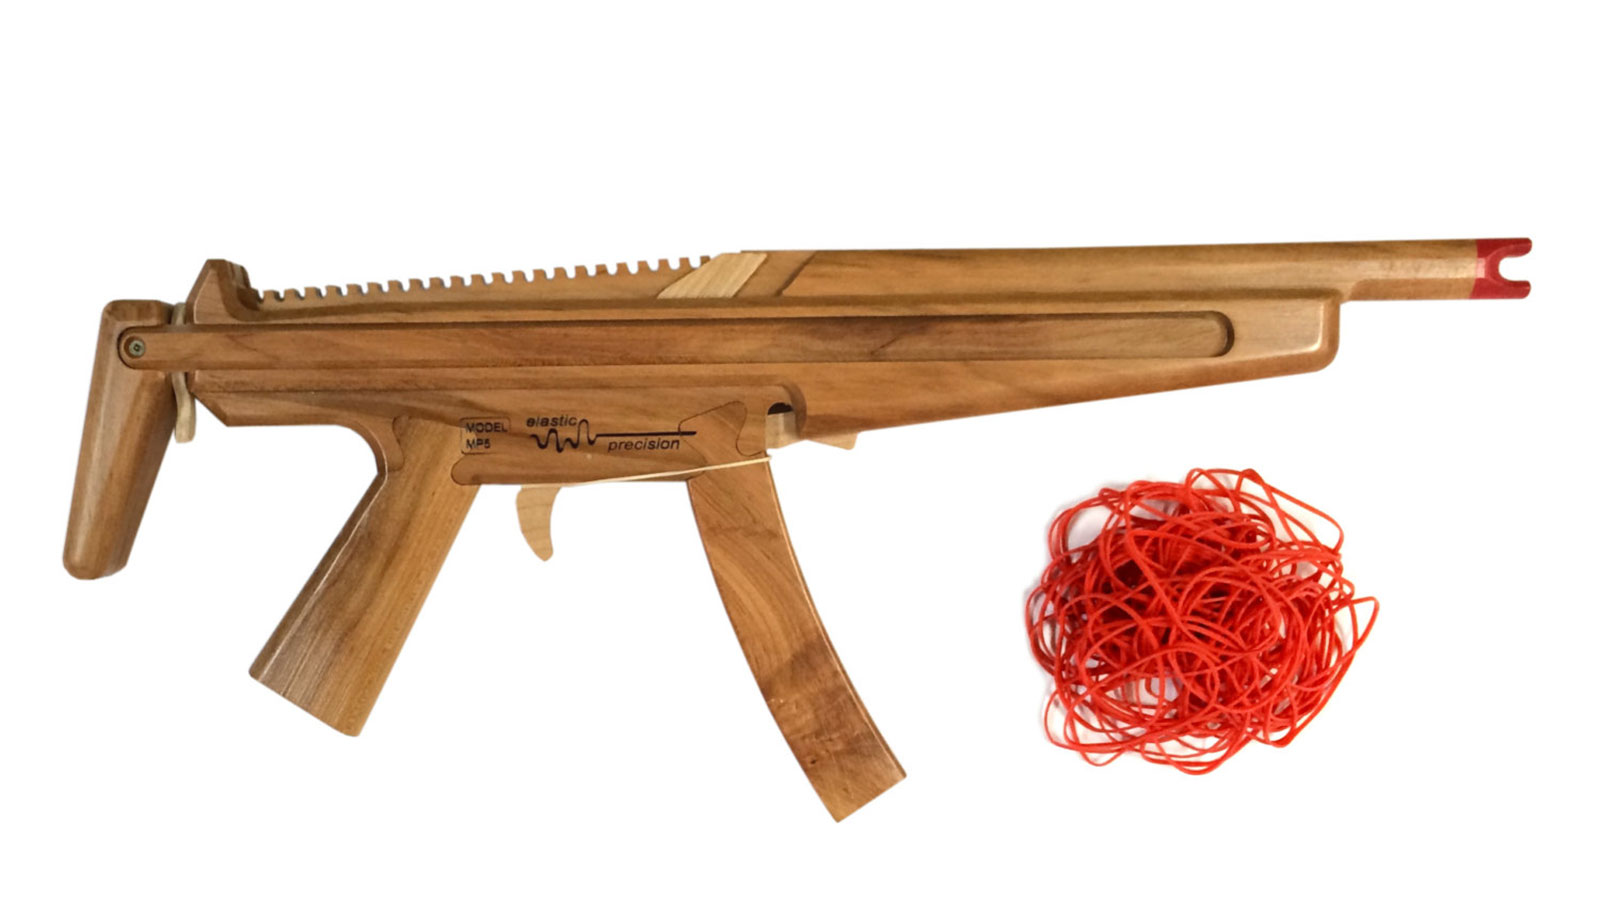 ELASTICPRECISION RUBBER BAND SUB-MACHINE GUN